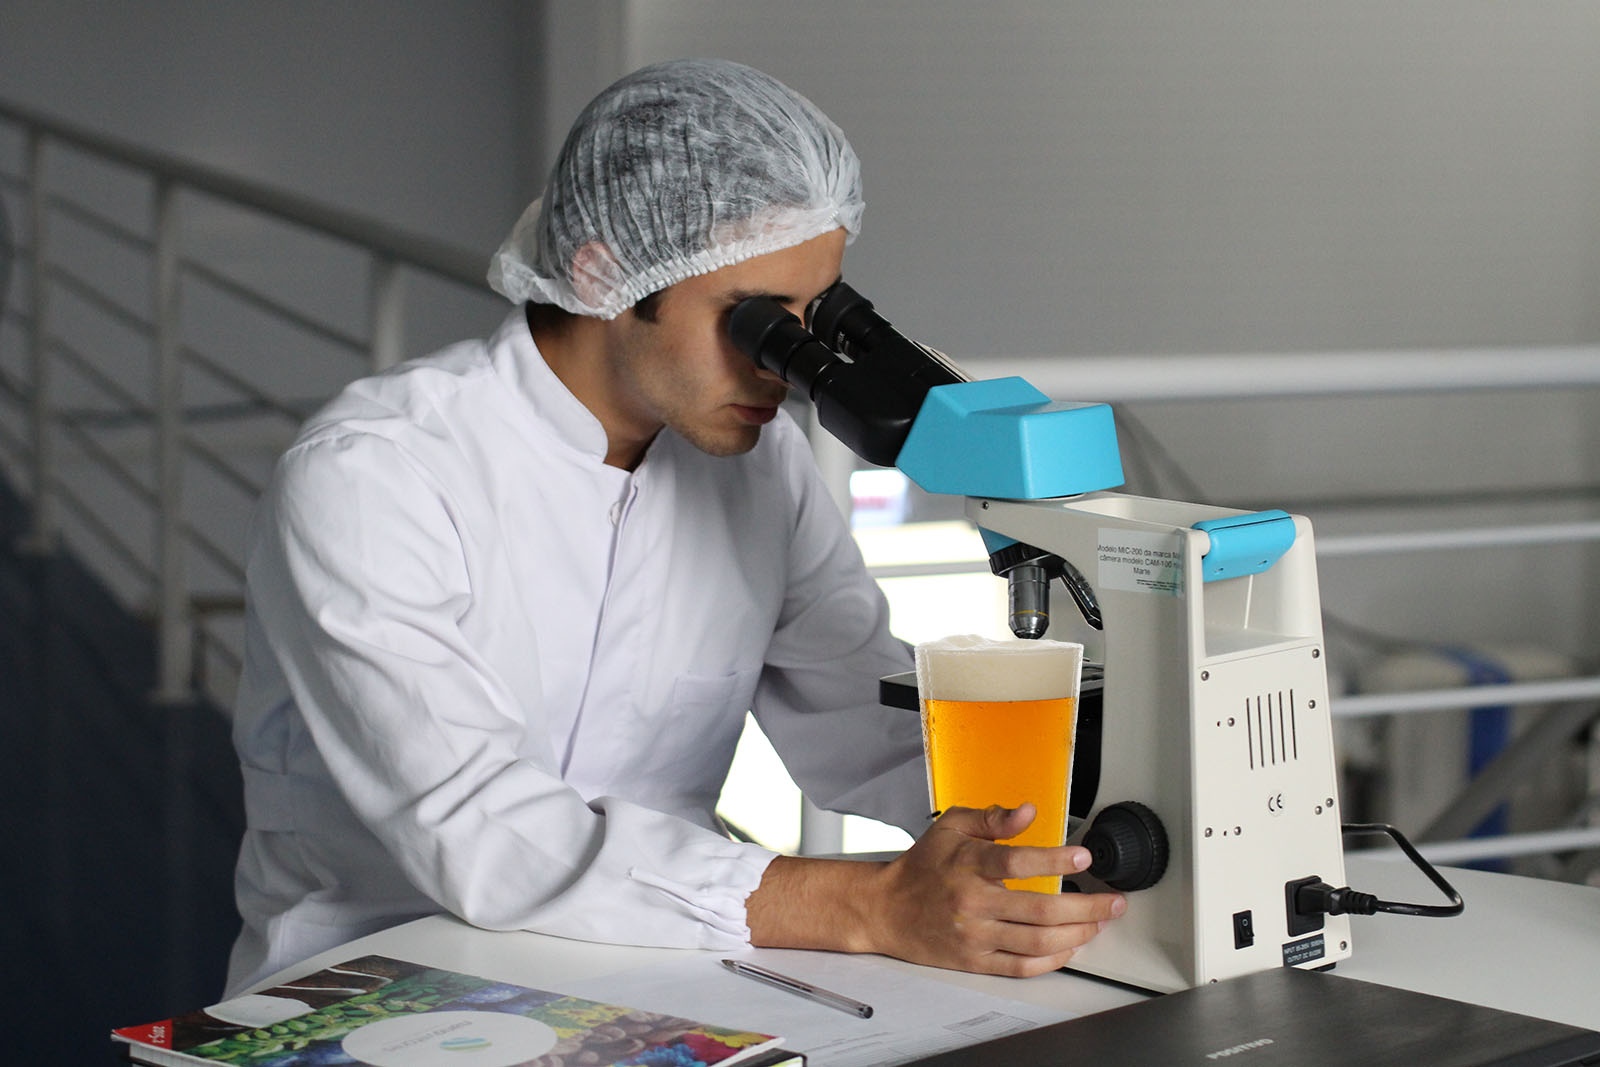 Scientists Find Alcohol-Based Life Forms At Restaurant